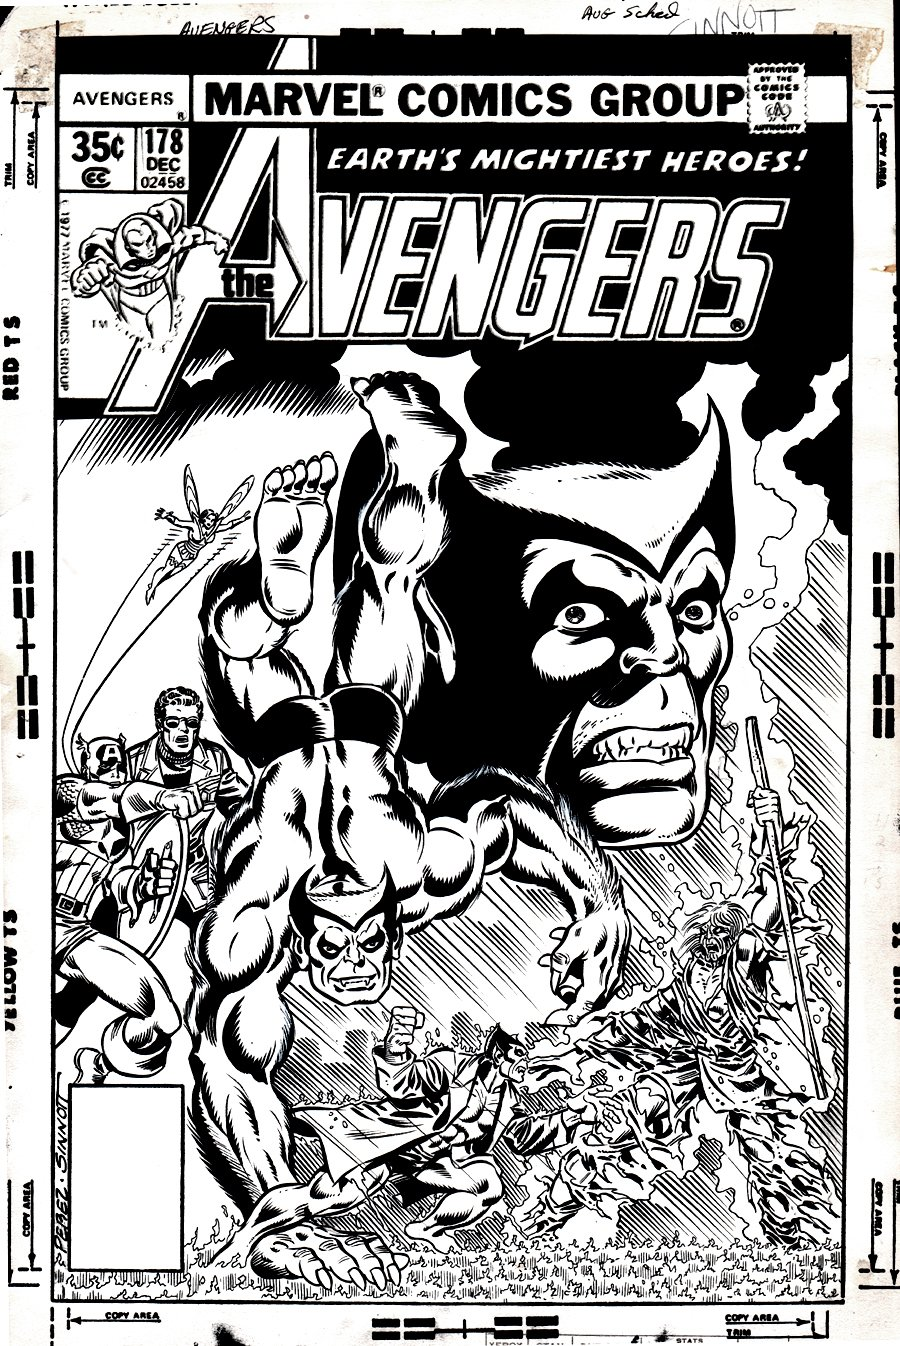 Avengers #178 Lost Cover (1978)